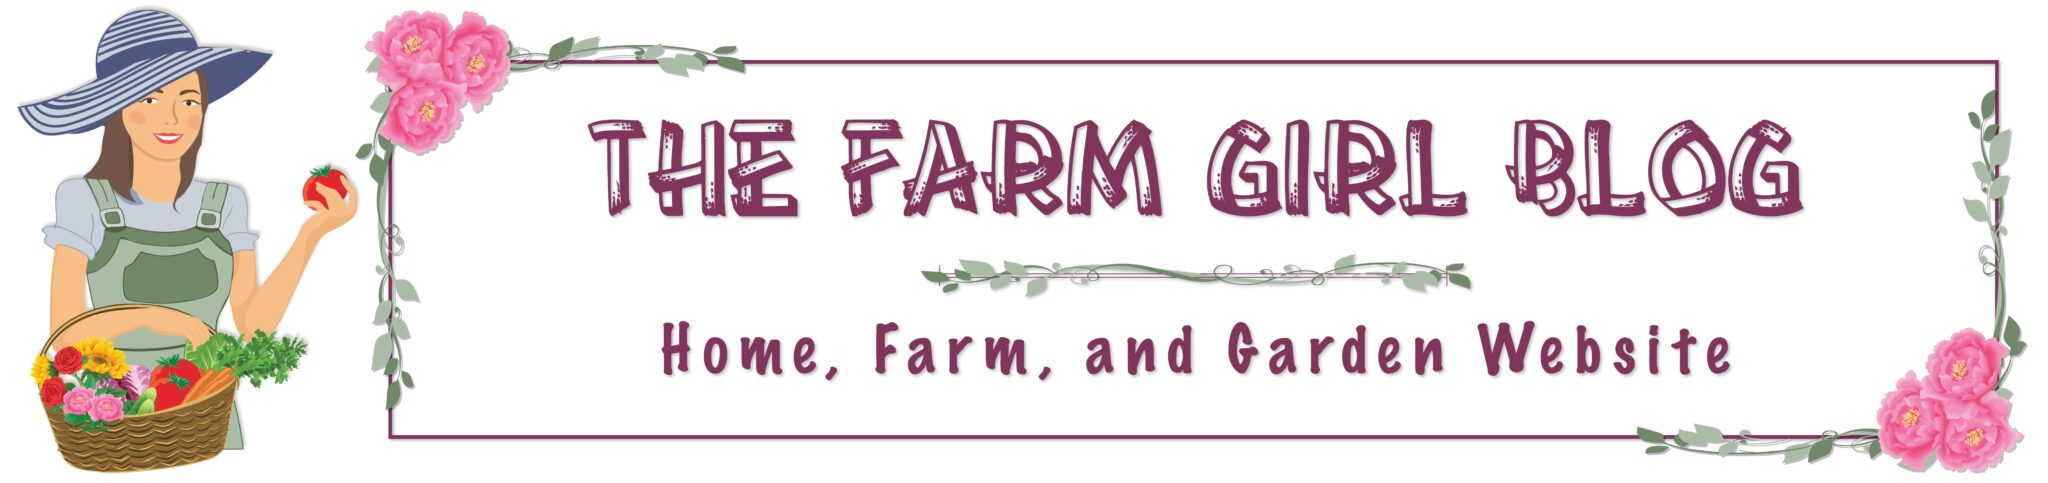 The Farm Girl Blog